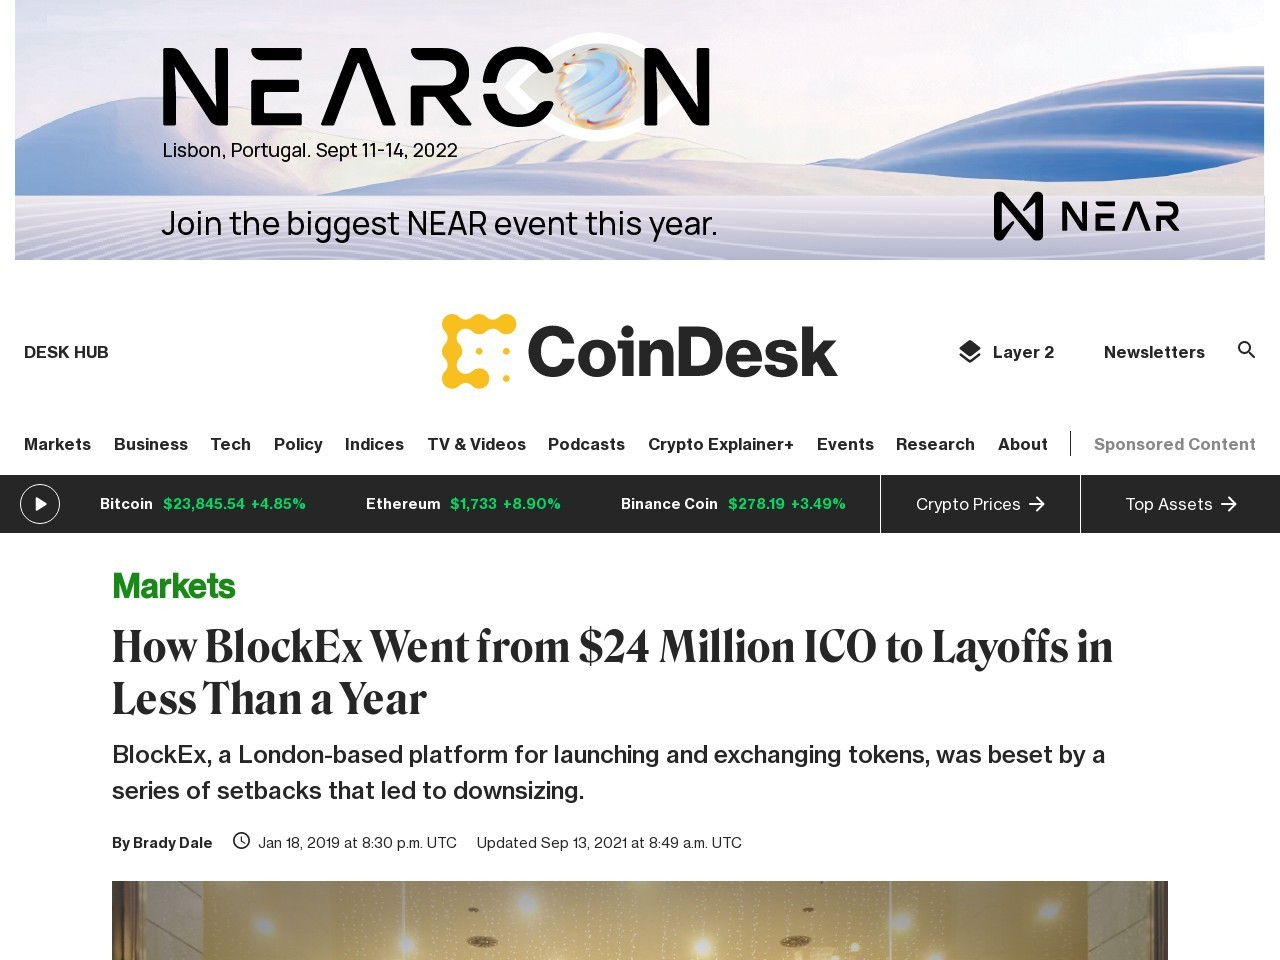 How BlockEx Went from $24 Million ICO to Layoffs in Less Than a Year